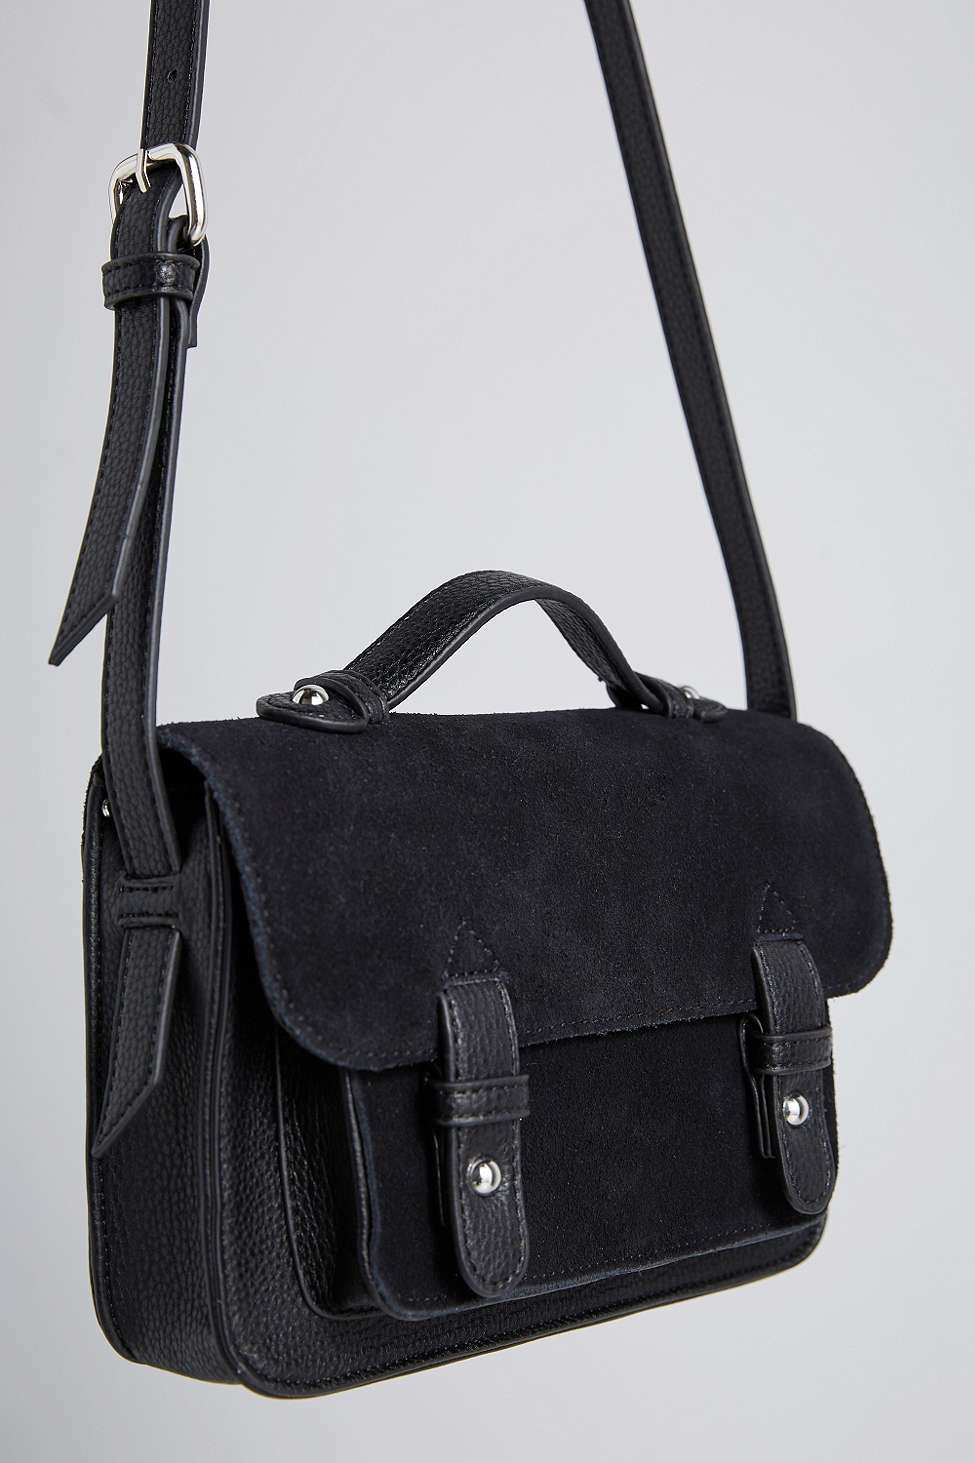 Bdg Mini Suede Messenger Bag in Black | Lyst